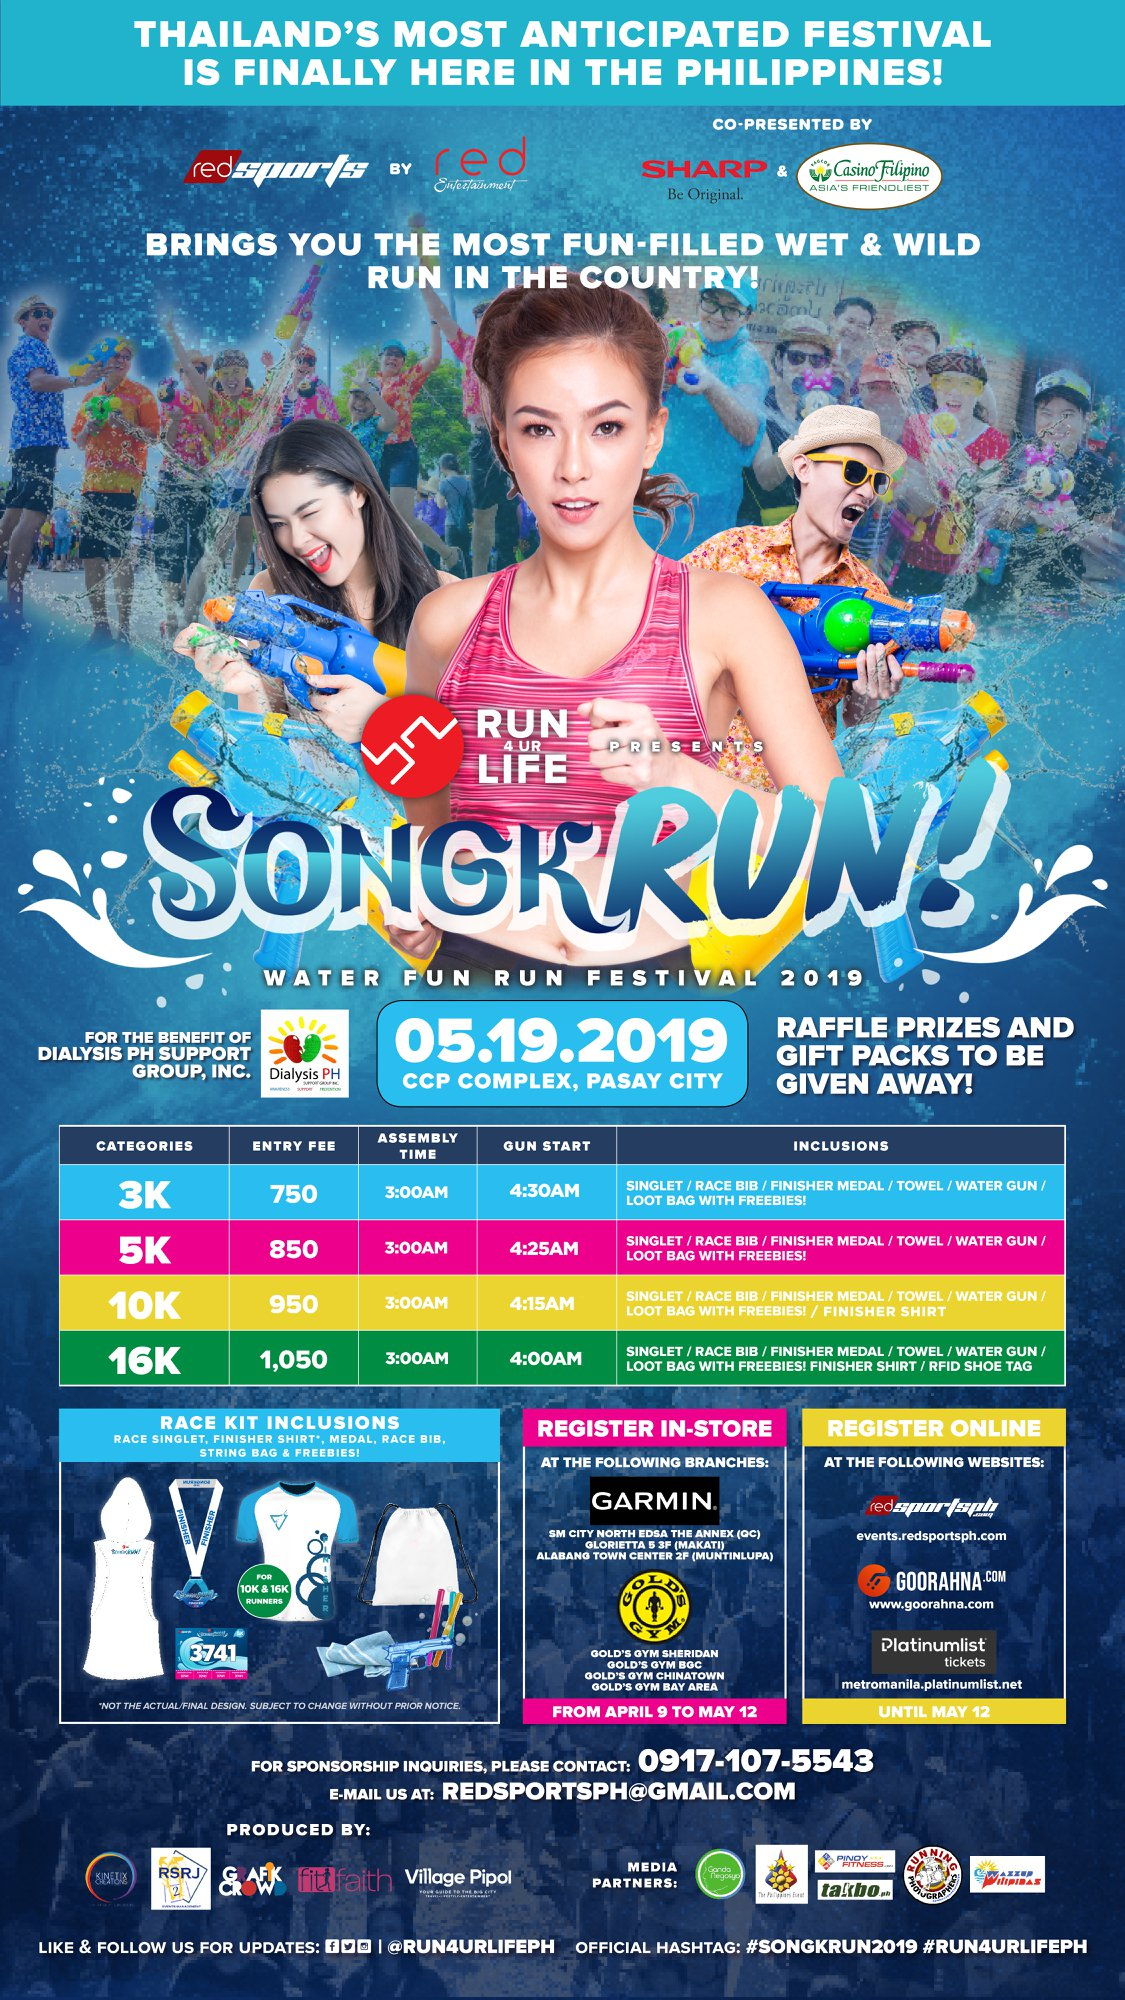 SongkRUN Updated Poster